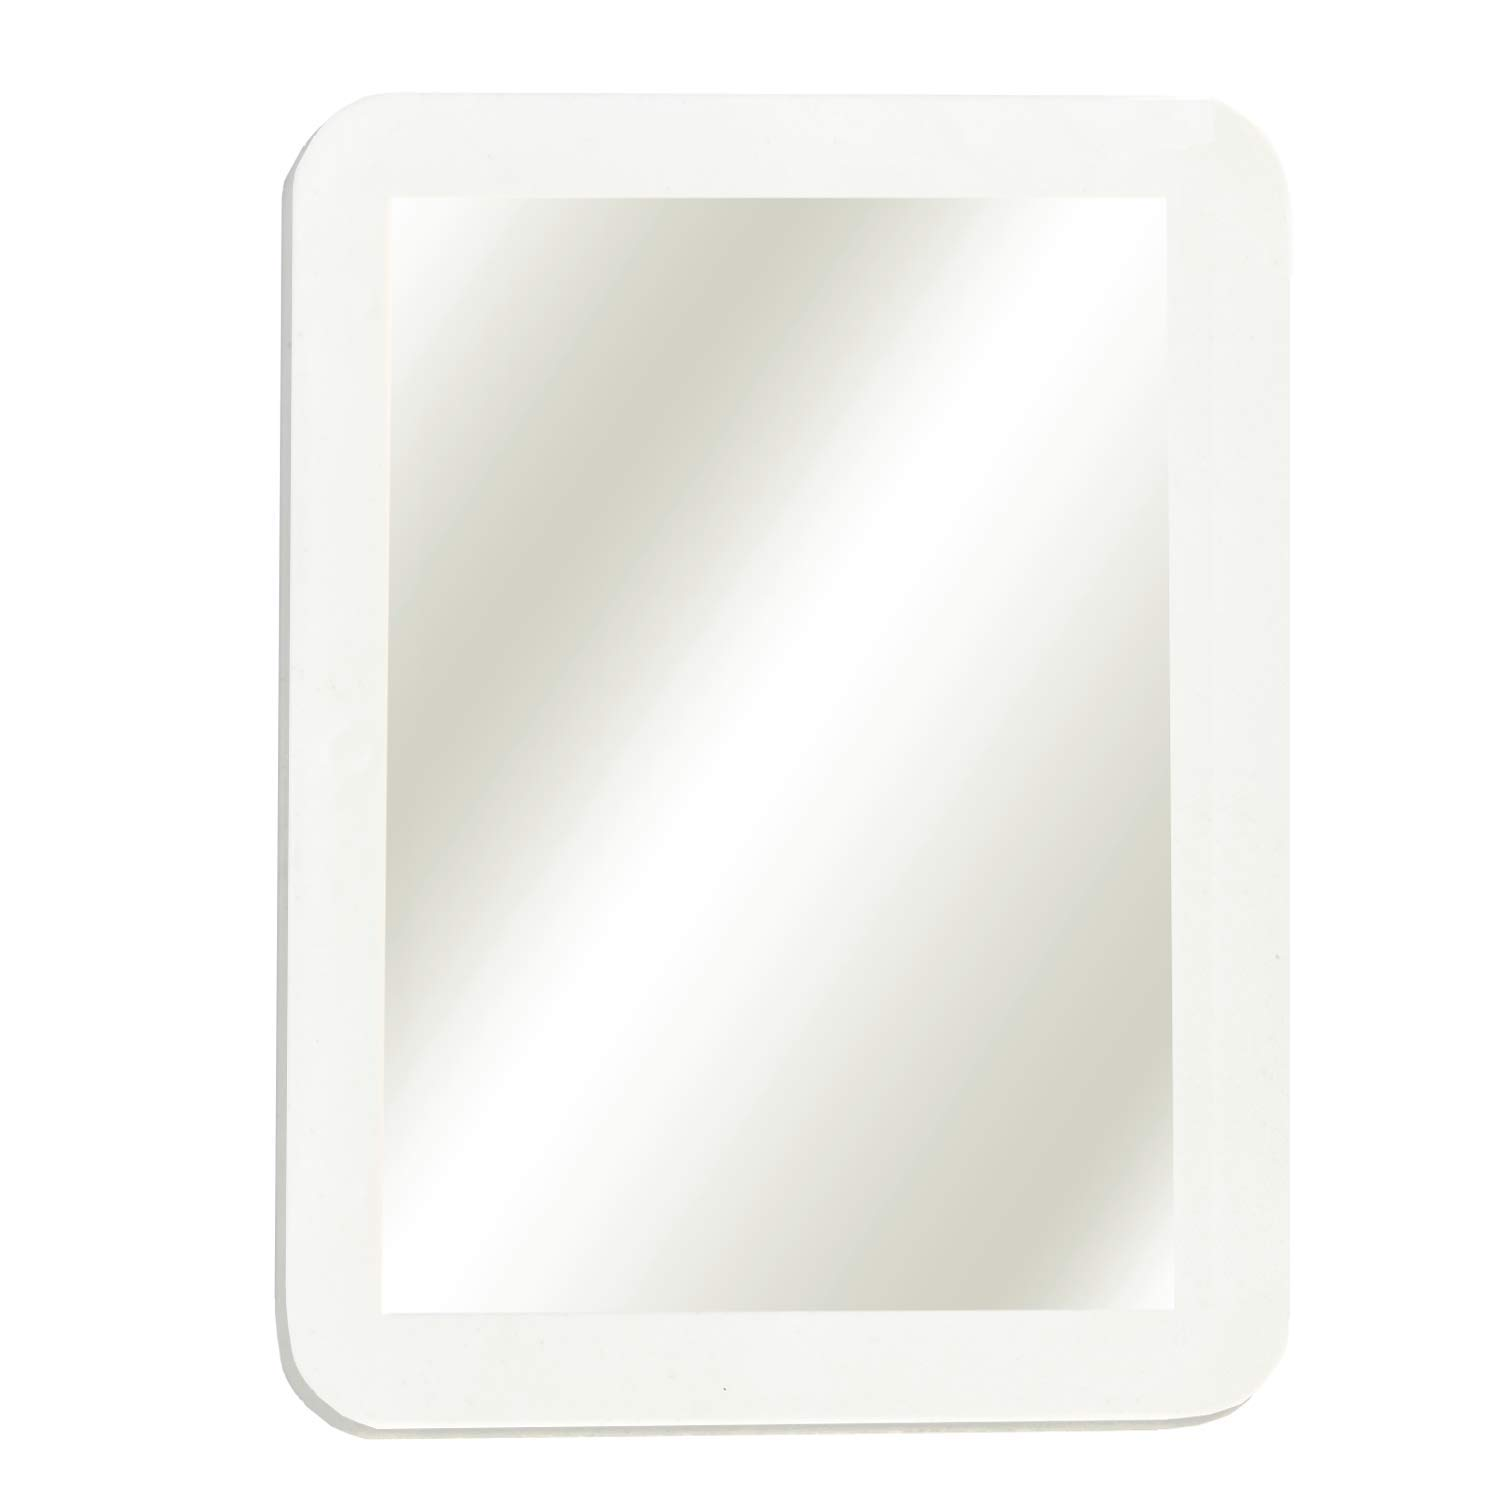 "Magnetic Locker Mirror For School Locker, Gym Locker, Office Cabinet, Workshop or Refrigerator, Makeup Mirror, 5"" x 7"" White"